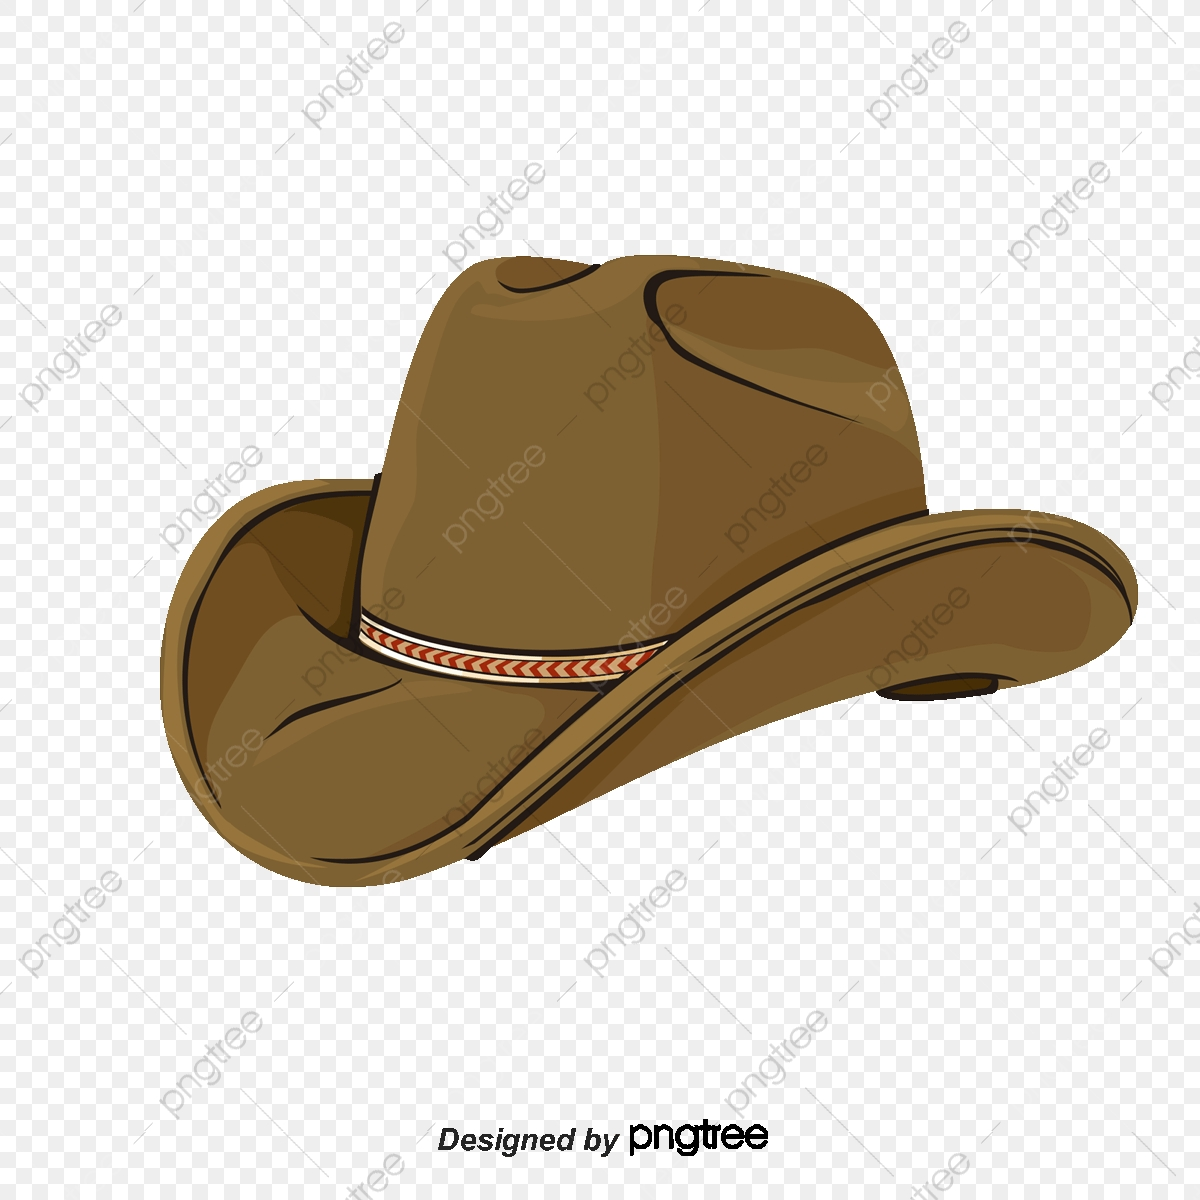 Cowboy Hat Cowboy Hat Clipart Vector Cowboy Png Transparent Clipart Image And Psd File For Free Download All of these cowboy hat resources are for free download on pngtree. https pngtree com freepng cowboy hat 2613986 html